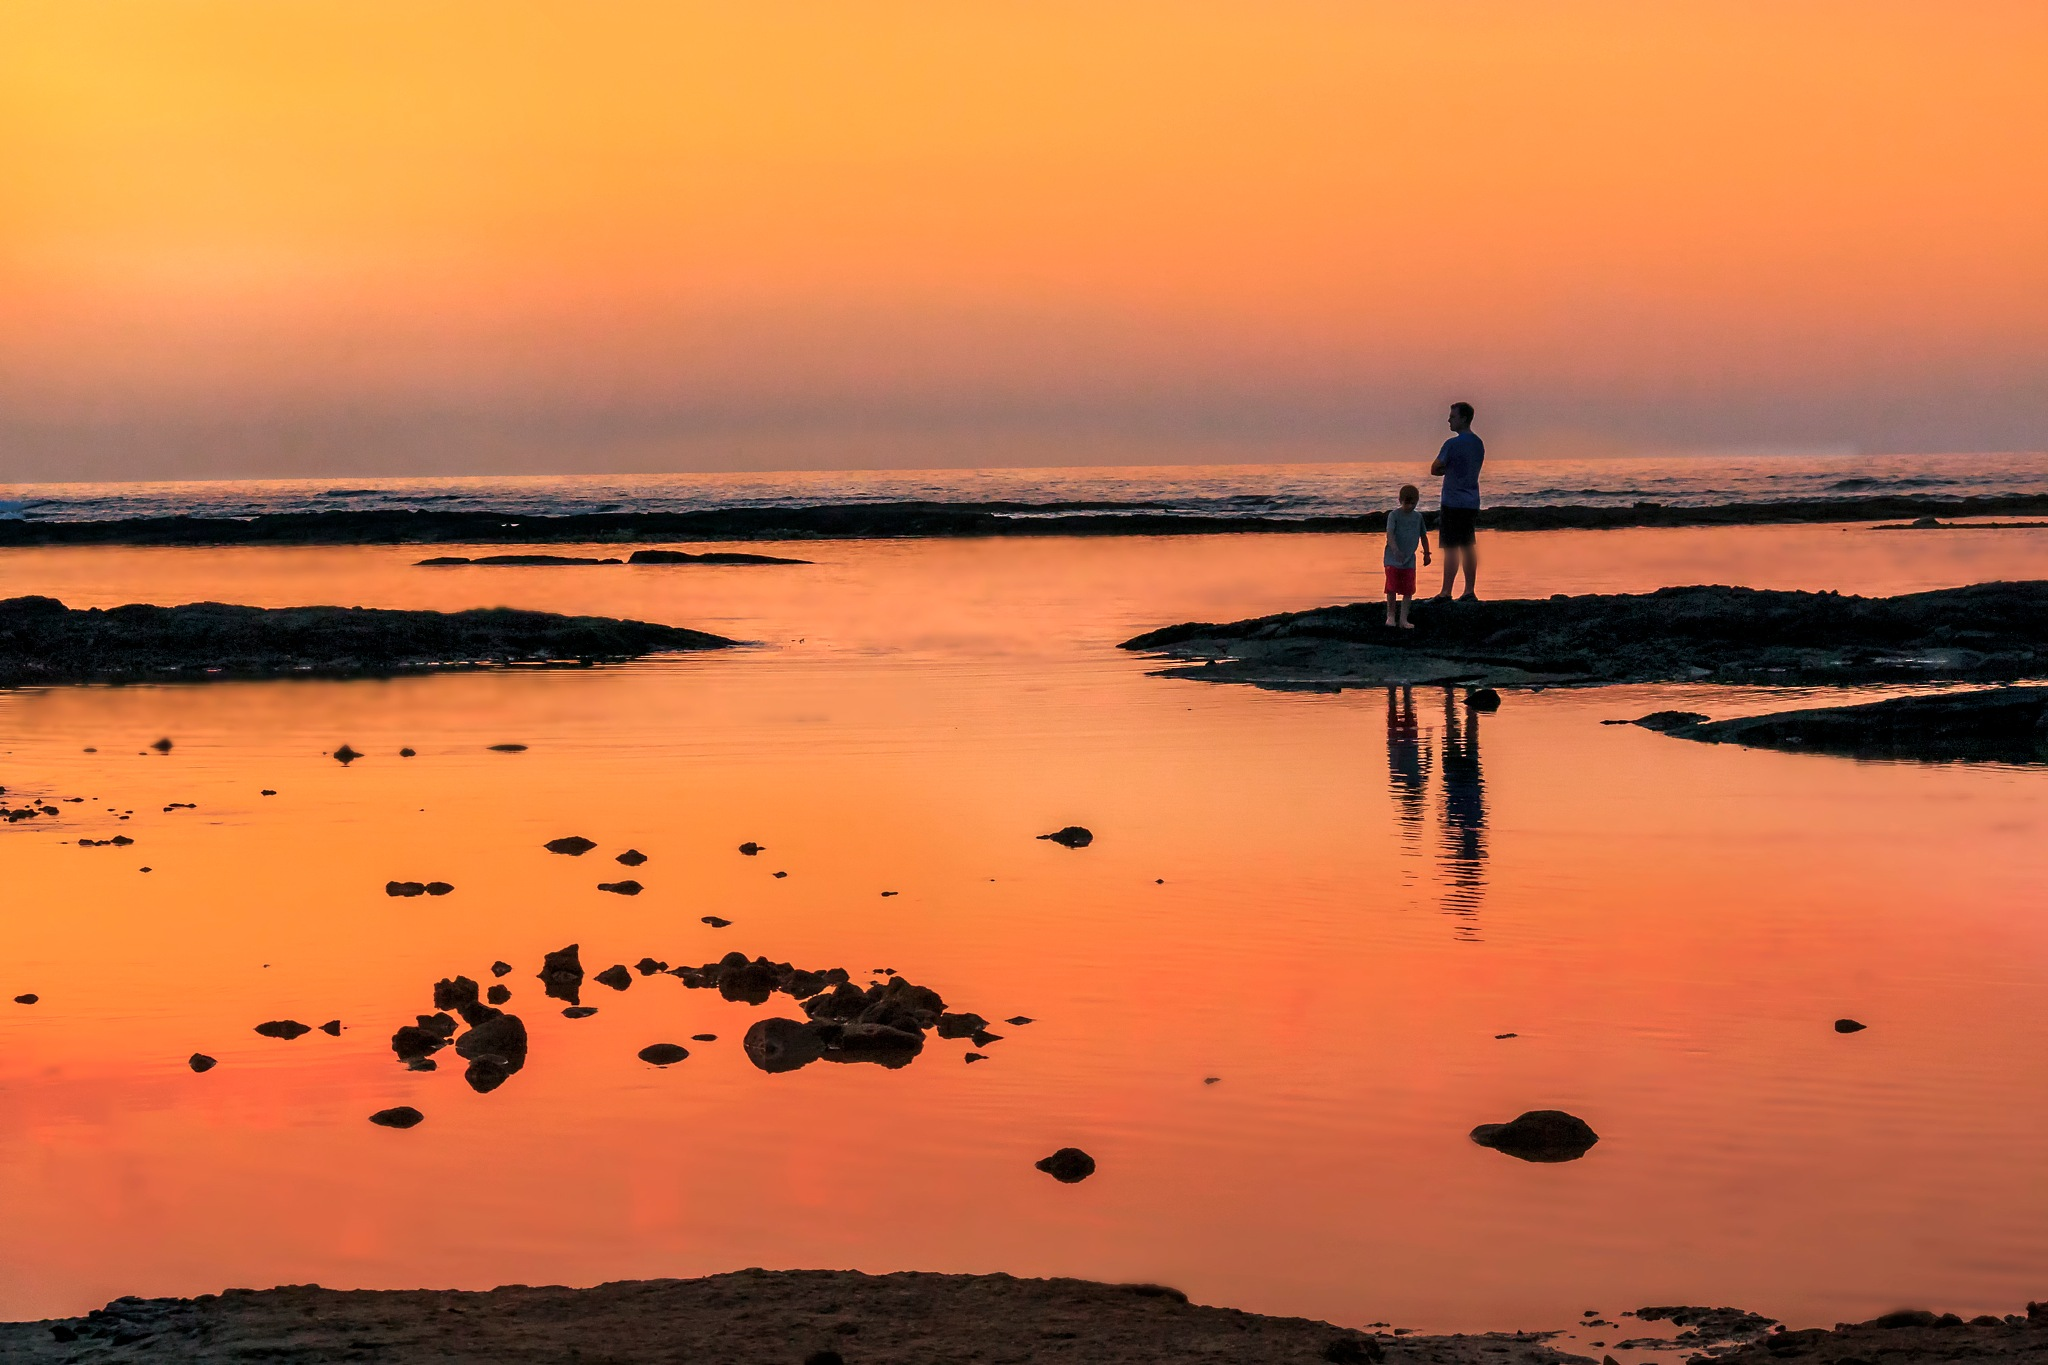 sharing sunset by SterlingLanier